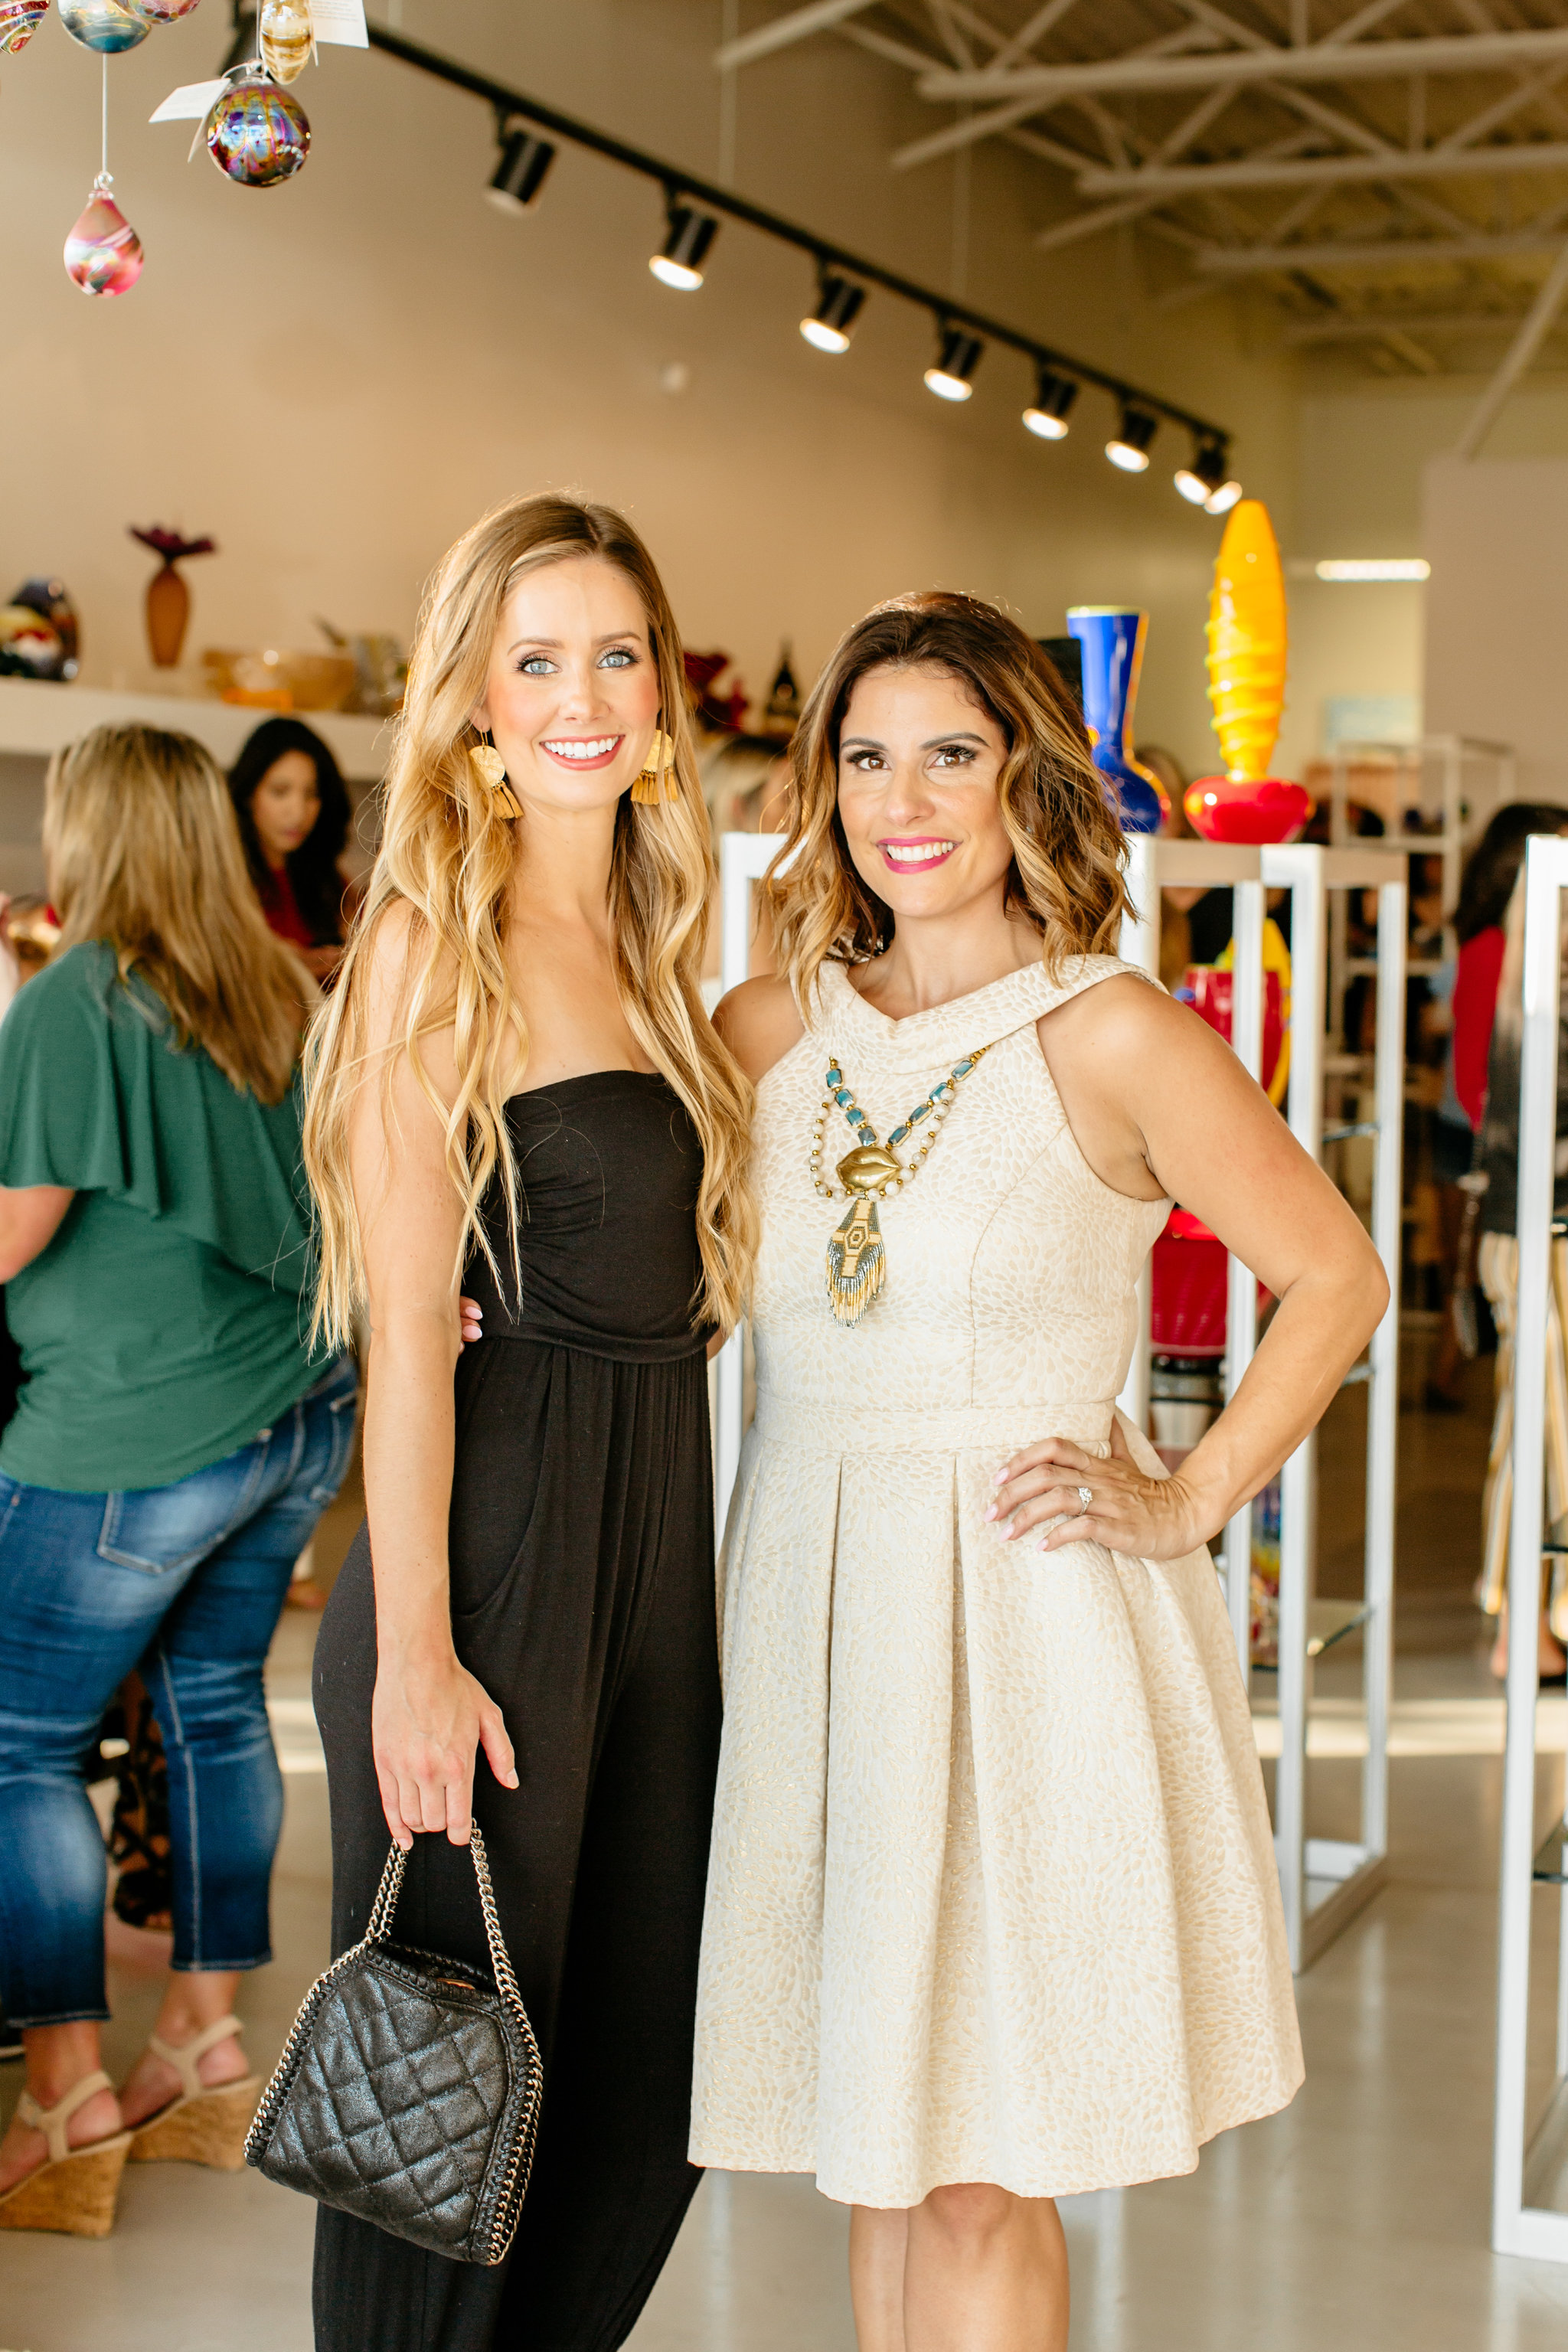 Alexa-Vossler-Photo_Dallas-Event-Photographer_Brite-Bar-Beauty-2018-Lipstick-Launch-Party-136.jpg